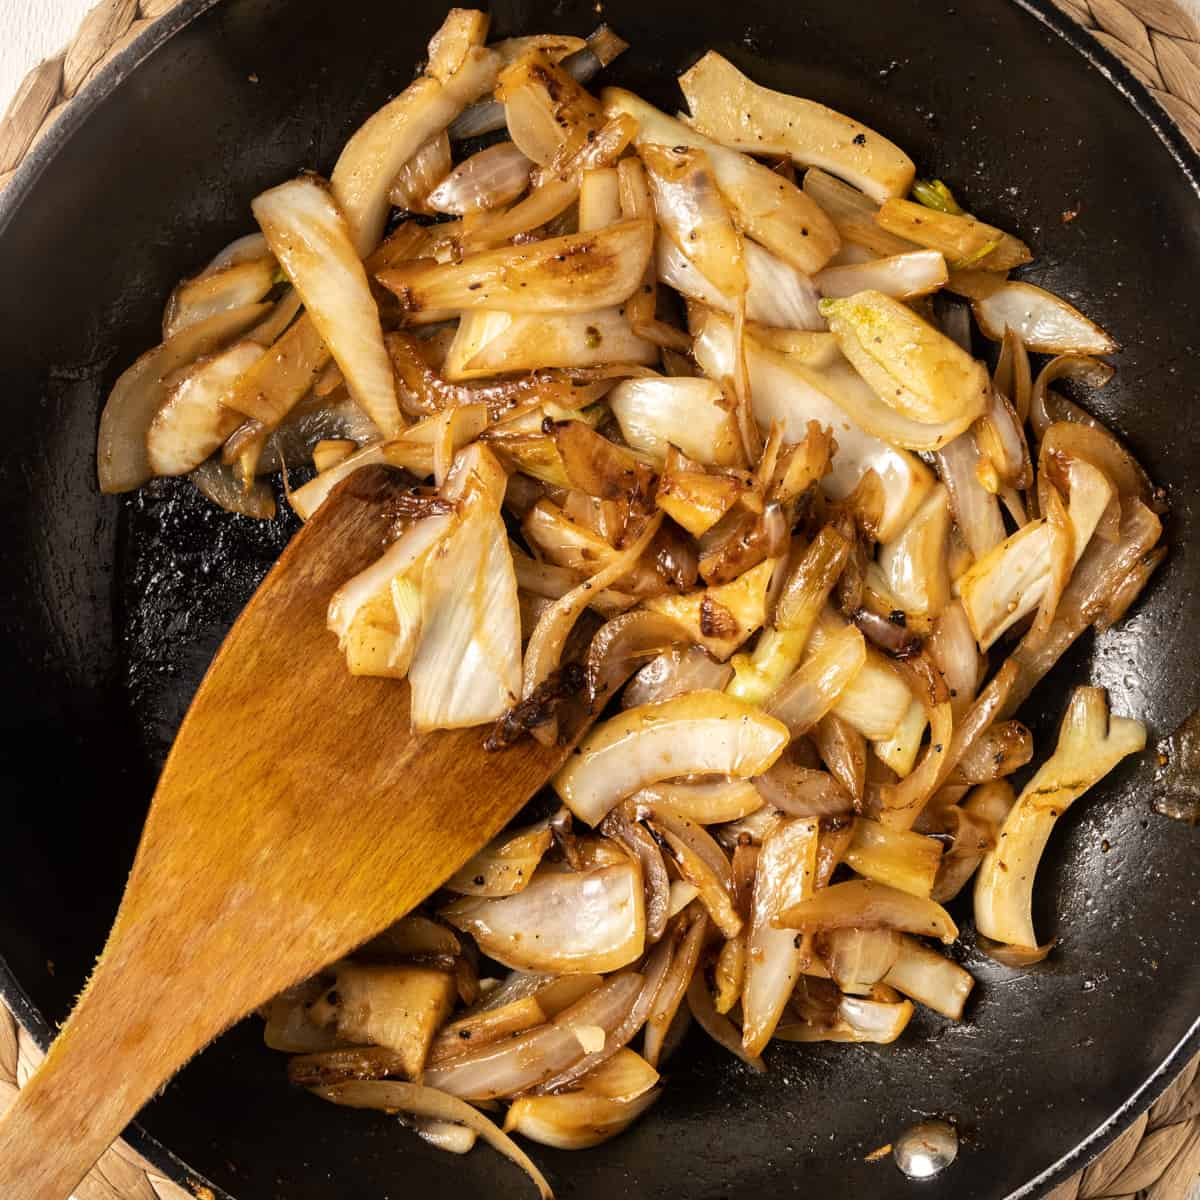 The fennel and onion are caramellised by sauteing in olive oil with some sugar.